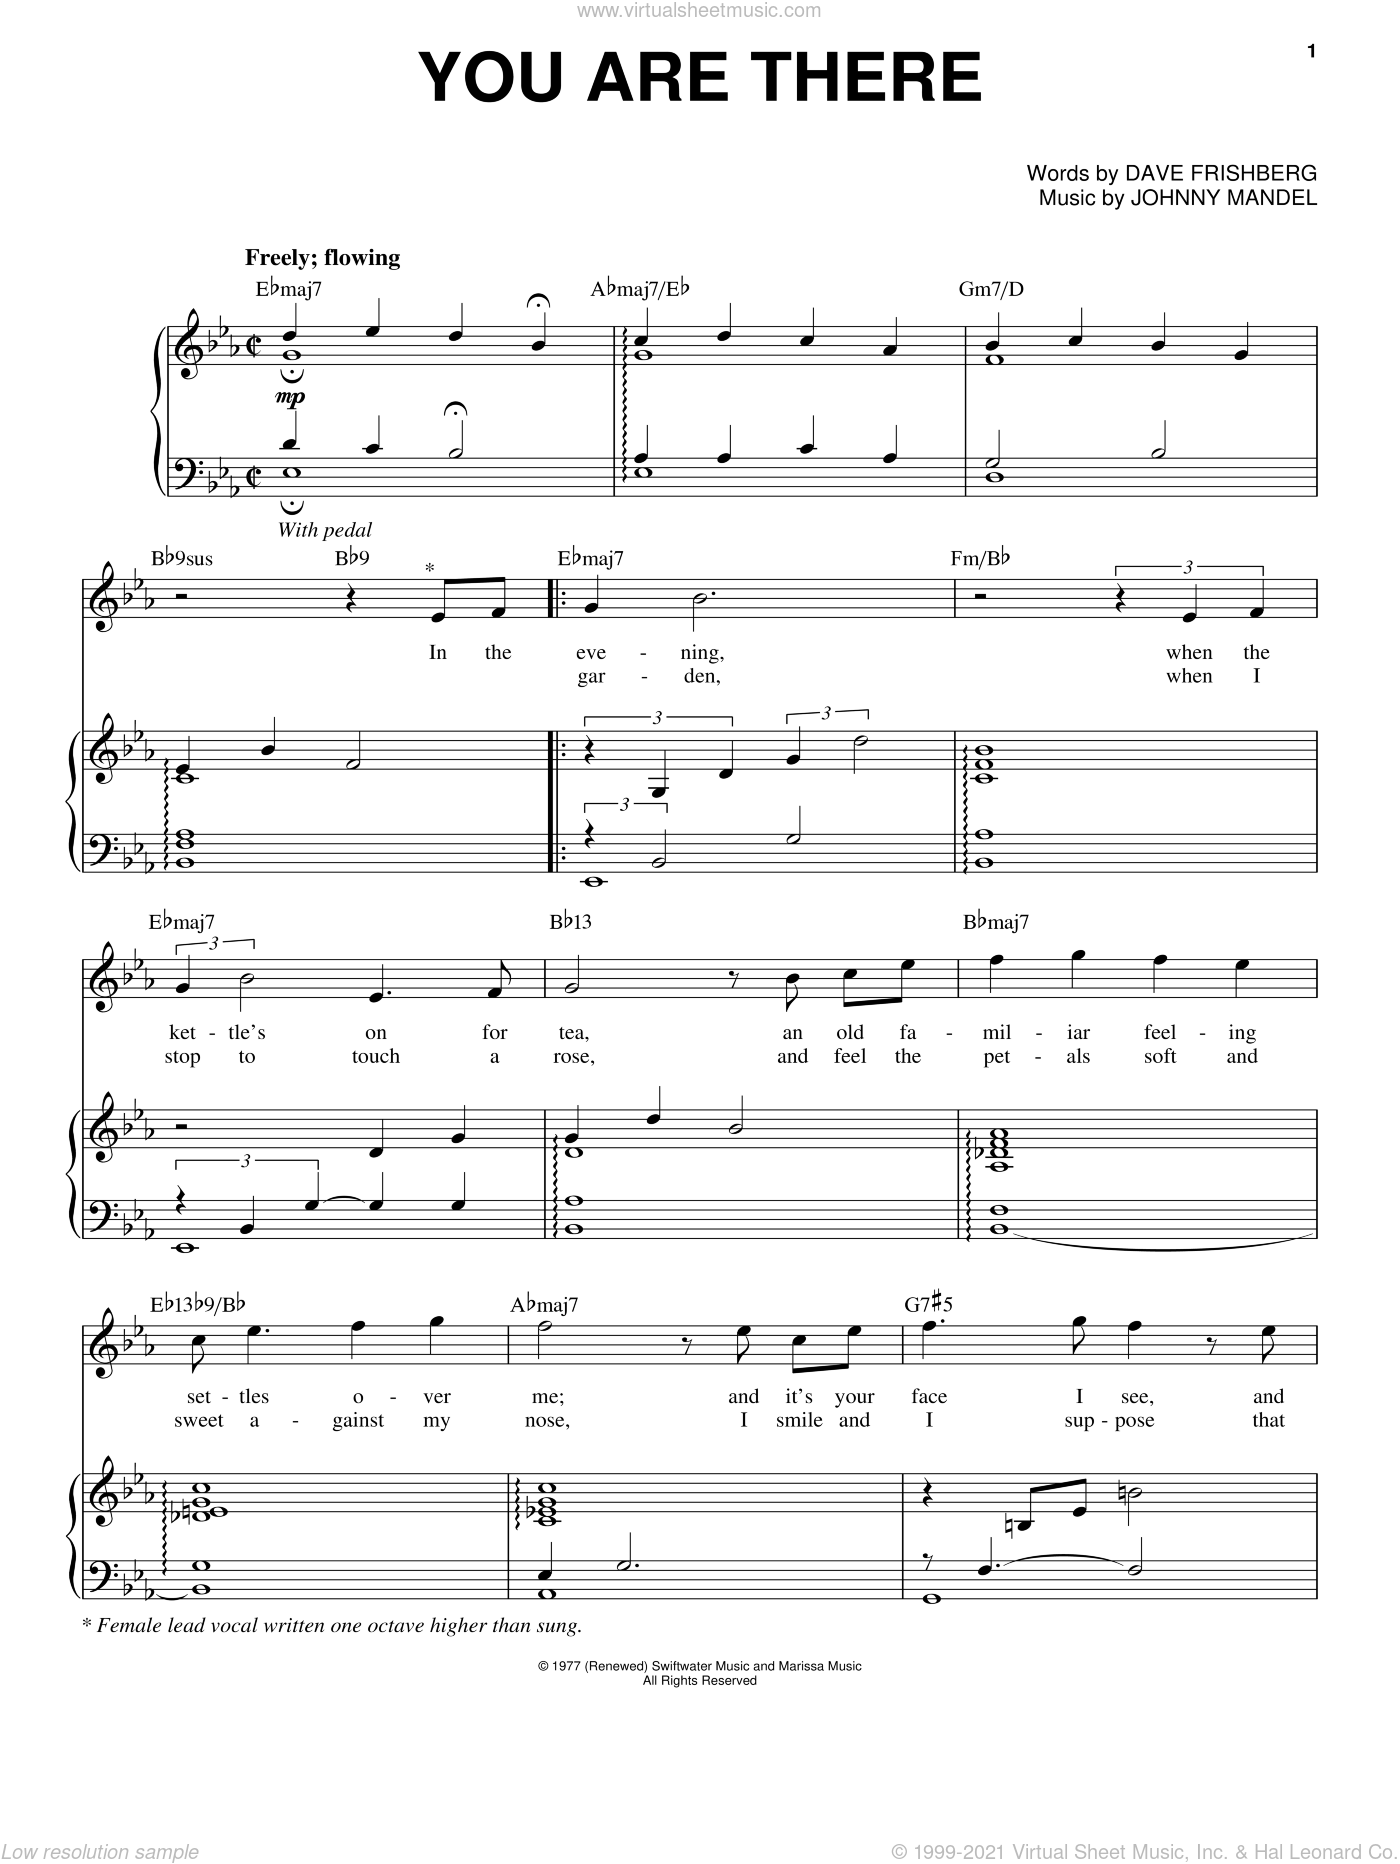 You Are There sheet music for voice and piano by Johnny Mandel and Dave Frishberg. Score Image Preview.